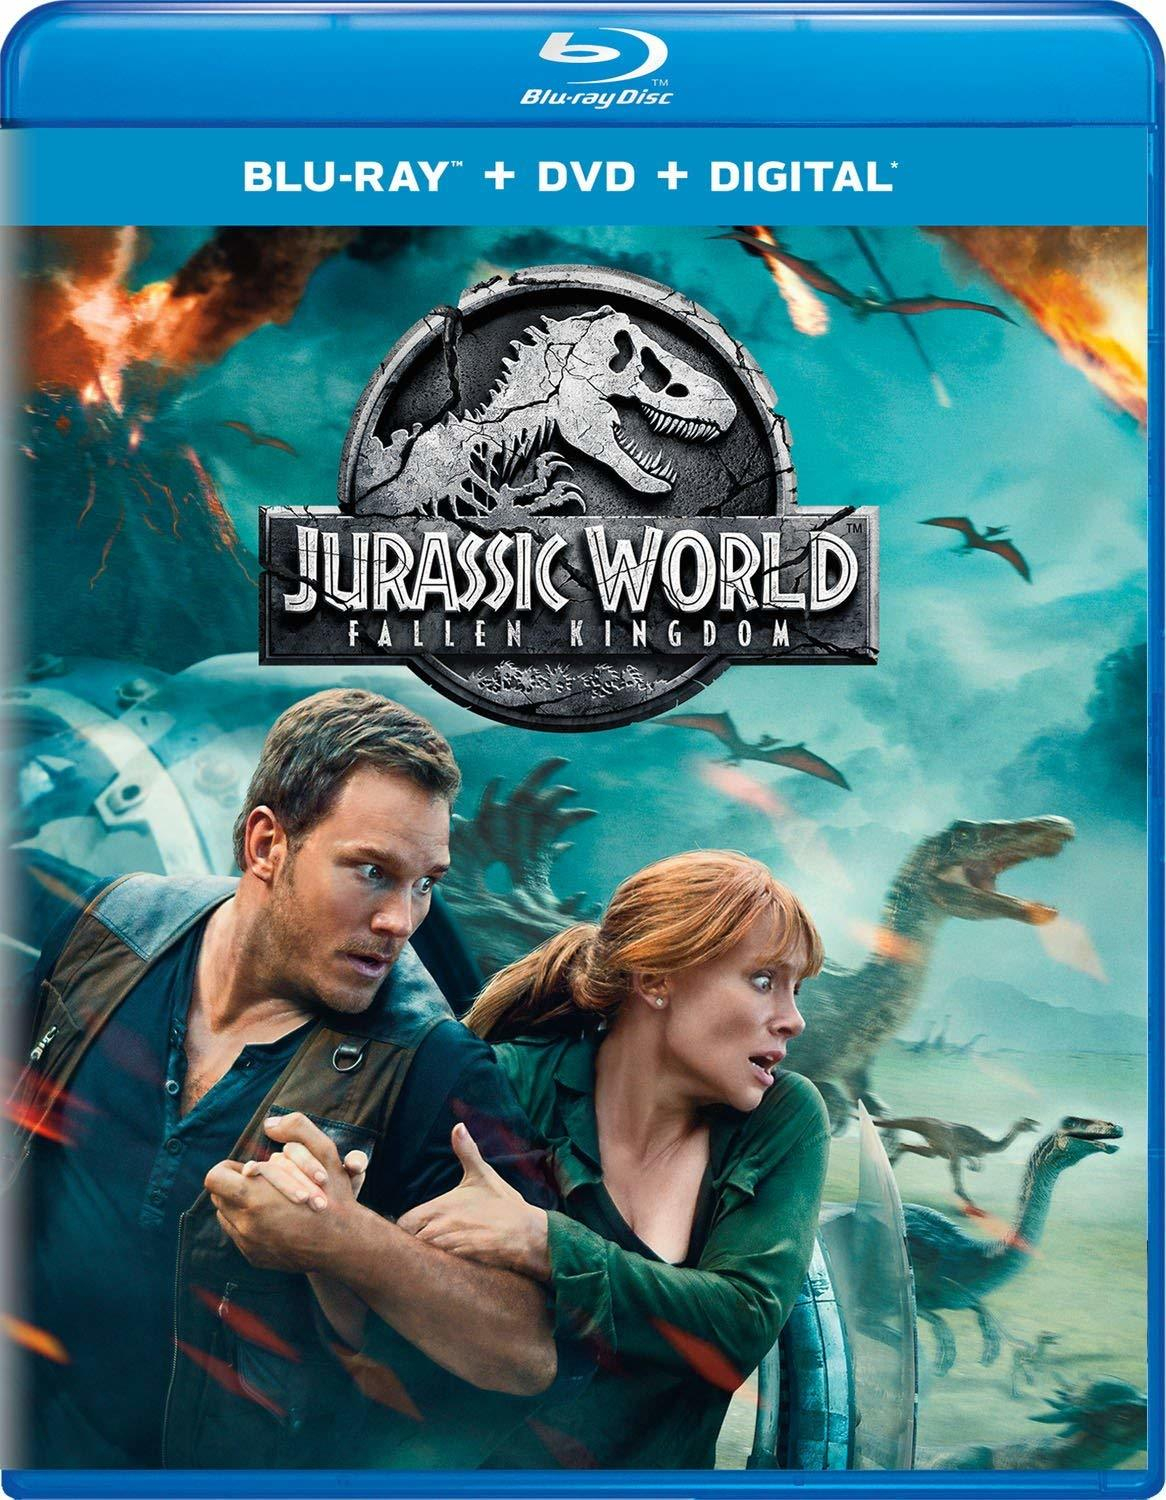 Jurassic World: Fallen Kingdom poster image